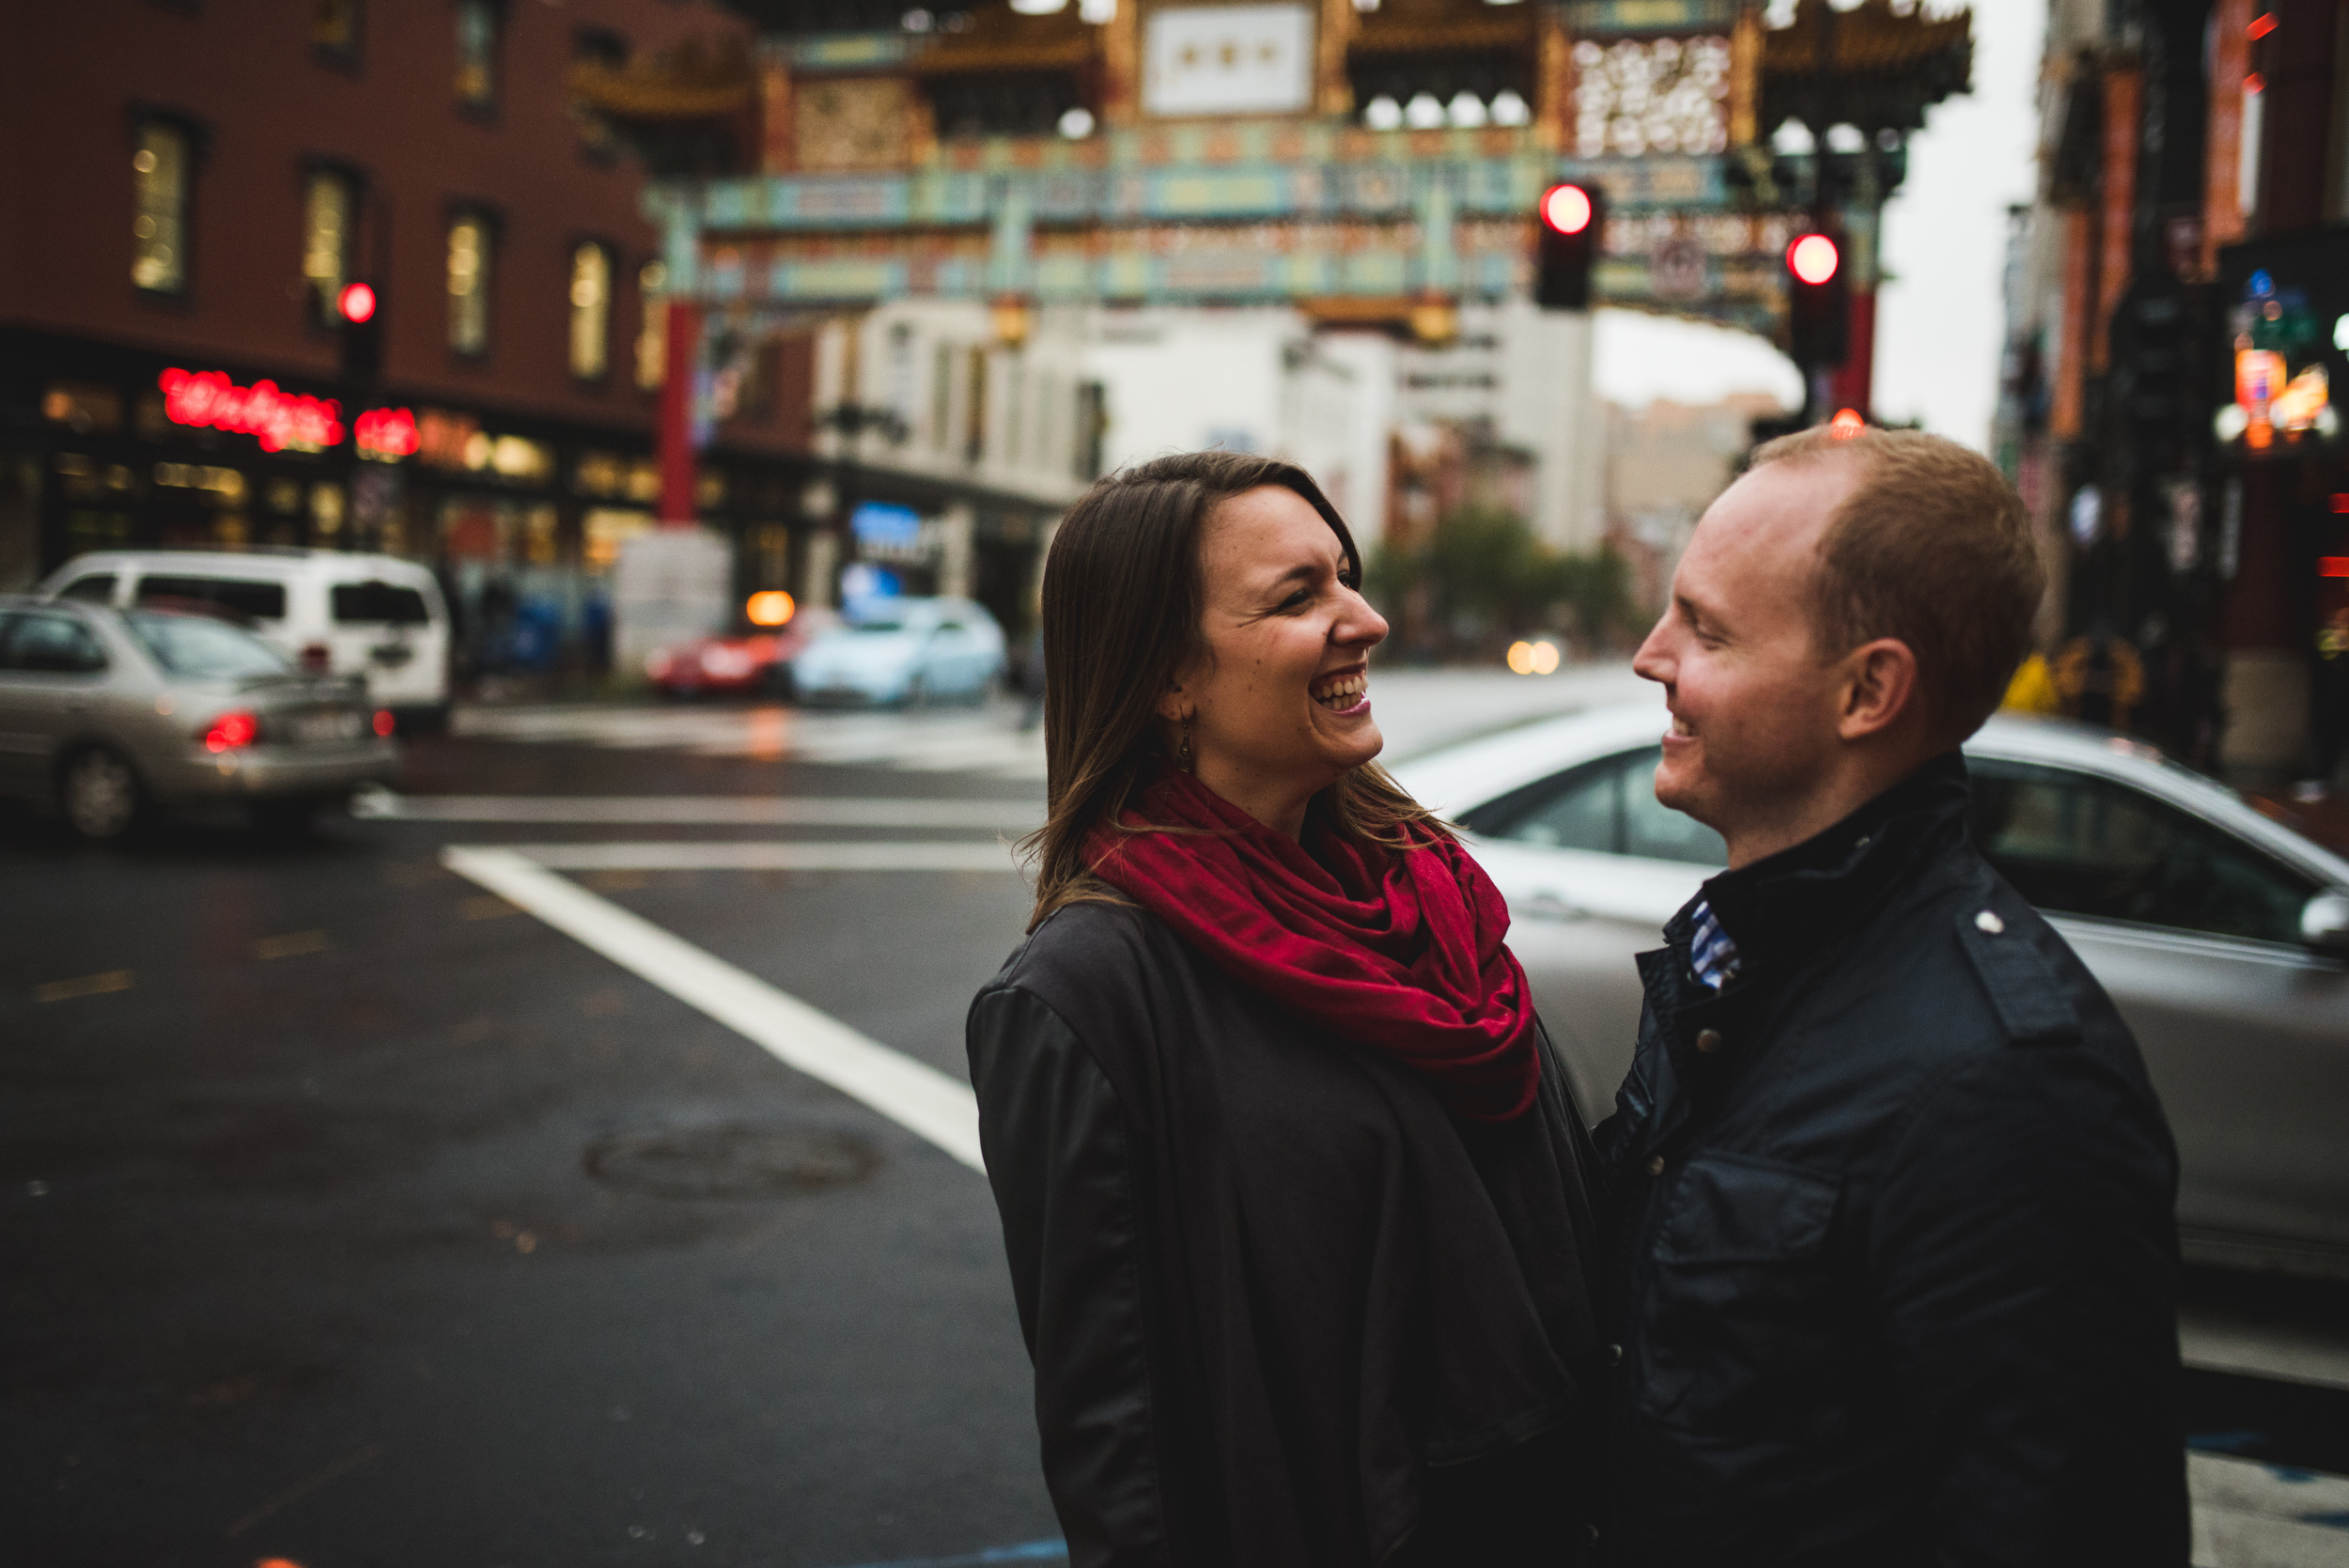 Smithsonian American Art Museum engagement session by Mantas Kubilinskas-22.jpg